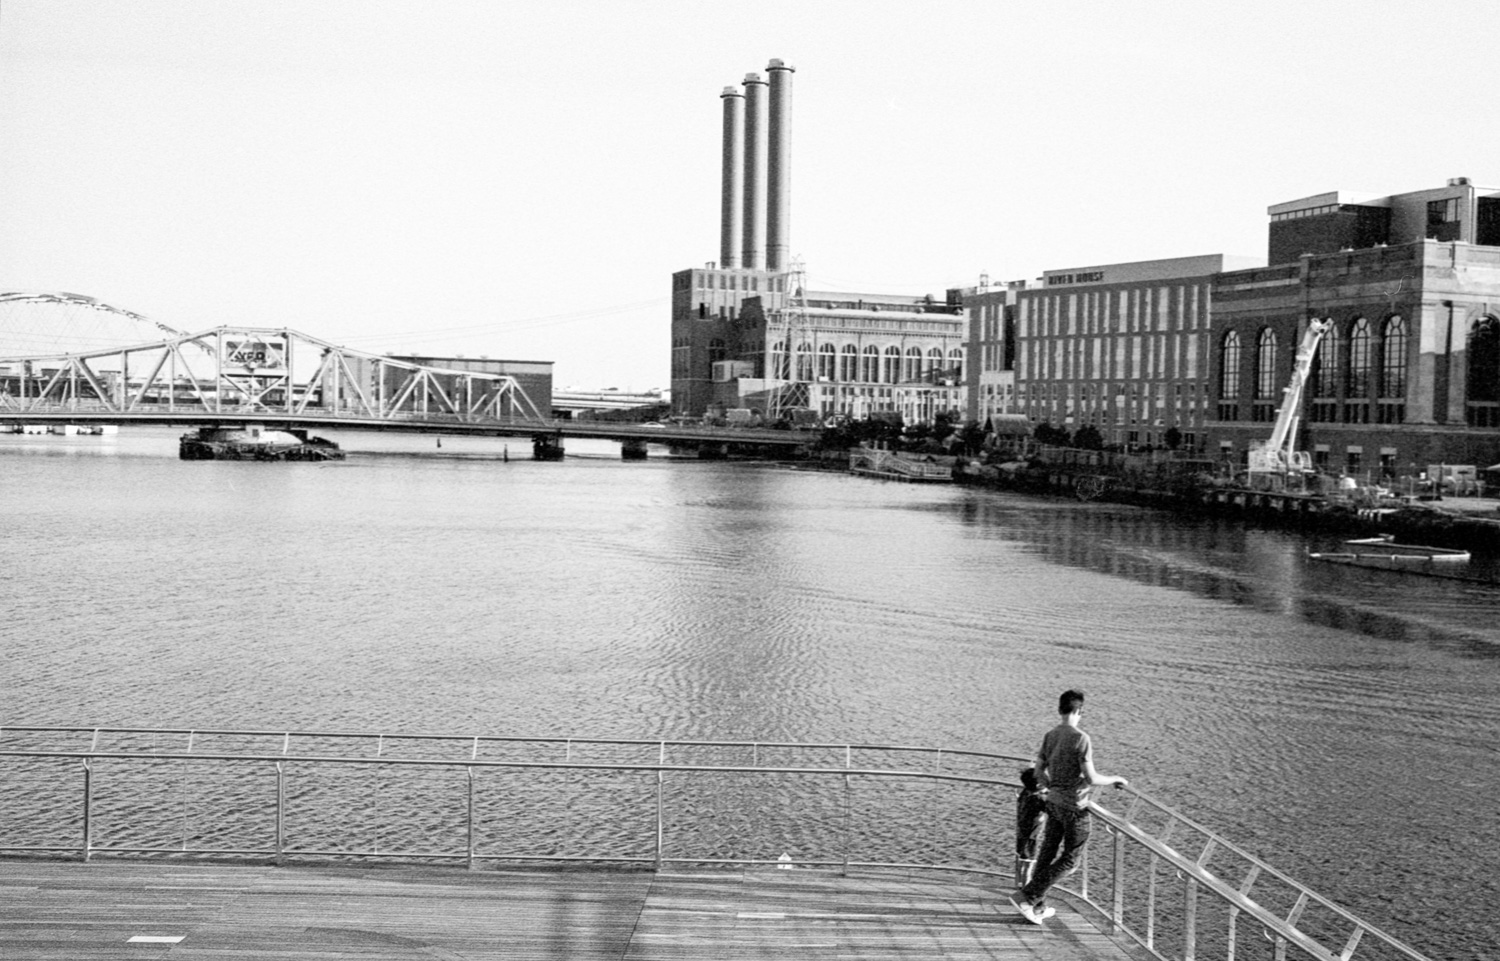 Riverfront - 5 Frames With... ADOX SILVERMAX 100 (EI 100 / 35mm / Leica M3) - by Louis Sousa